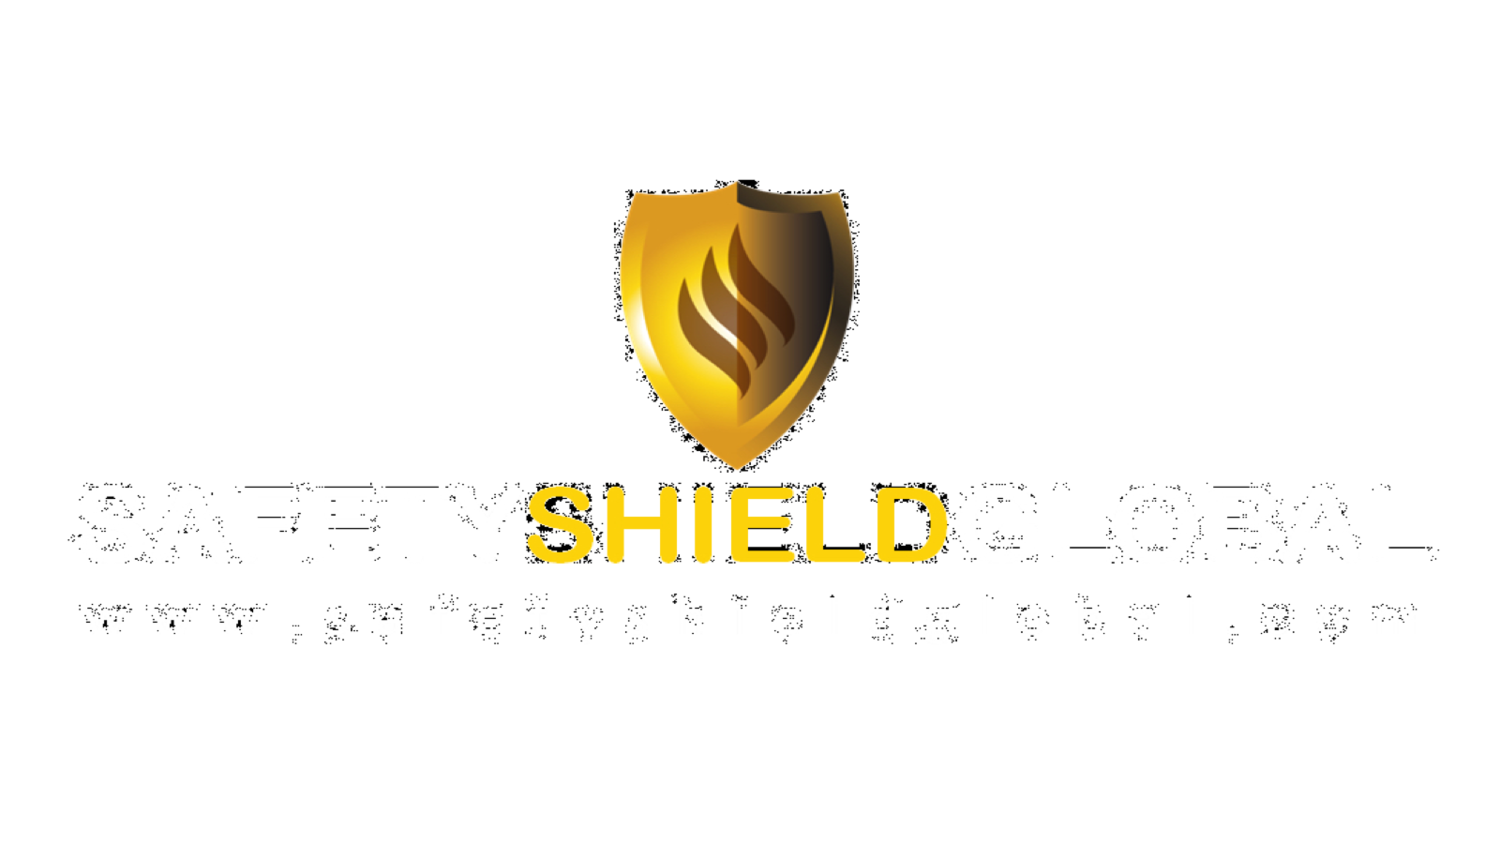 Safety Shield Global - A Multi-Award Winning Vehicle & Plant Safety Systems